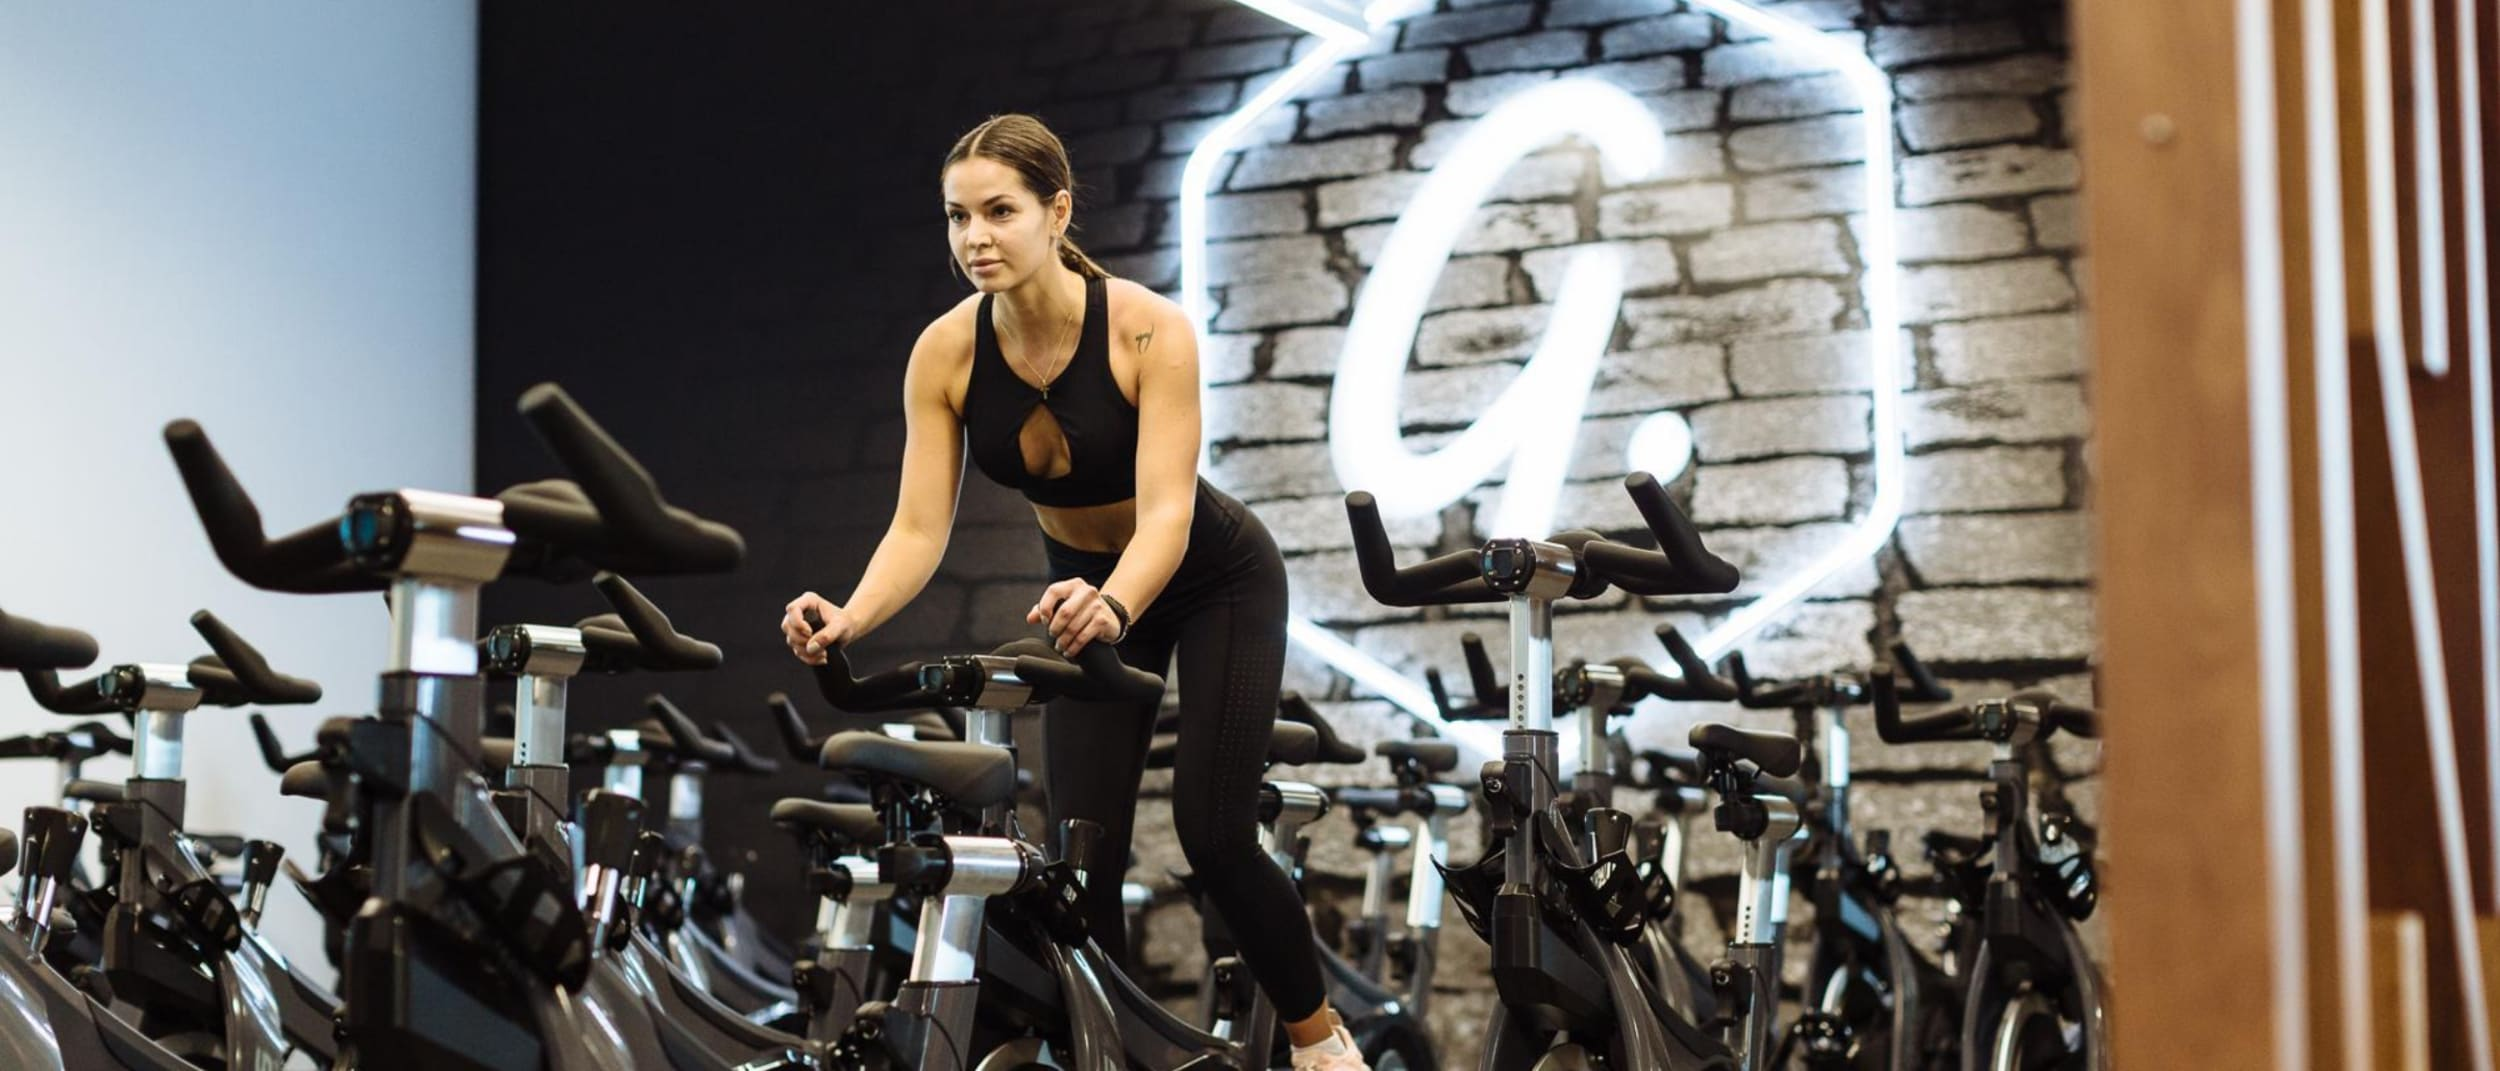 Kickstart your fitness with $0 joining fee at Goodlife